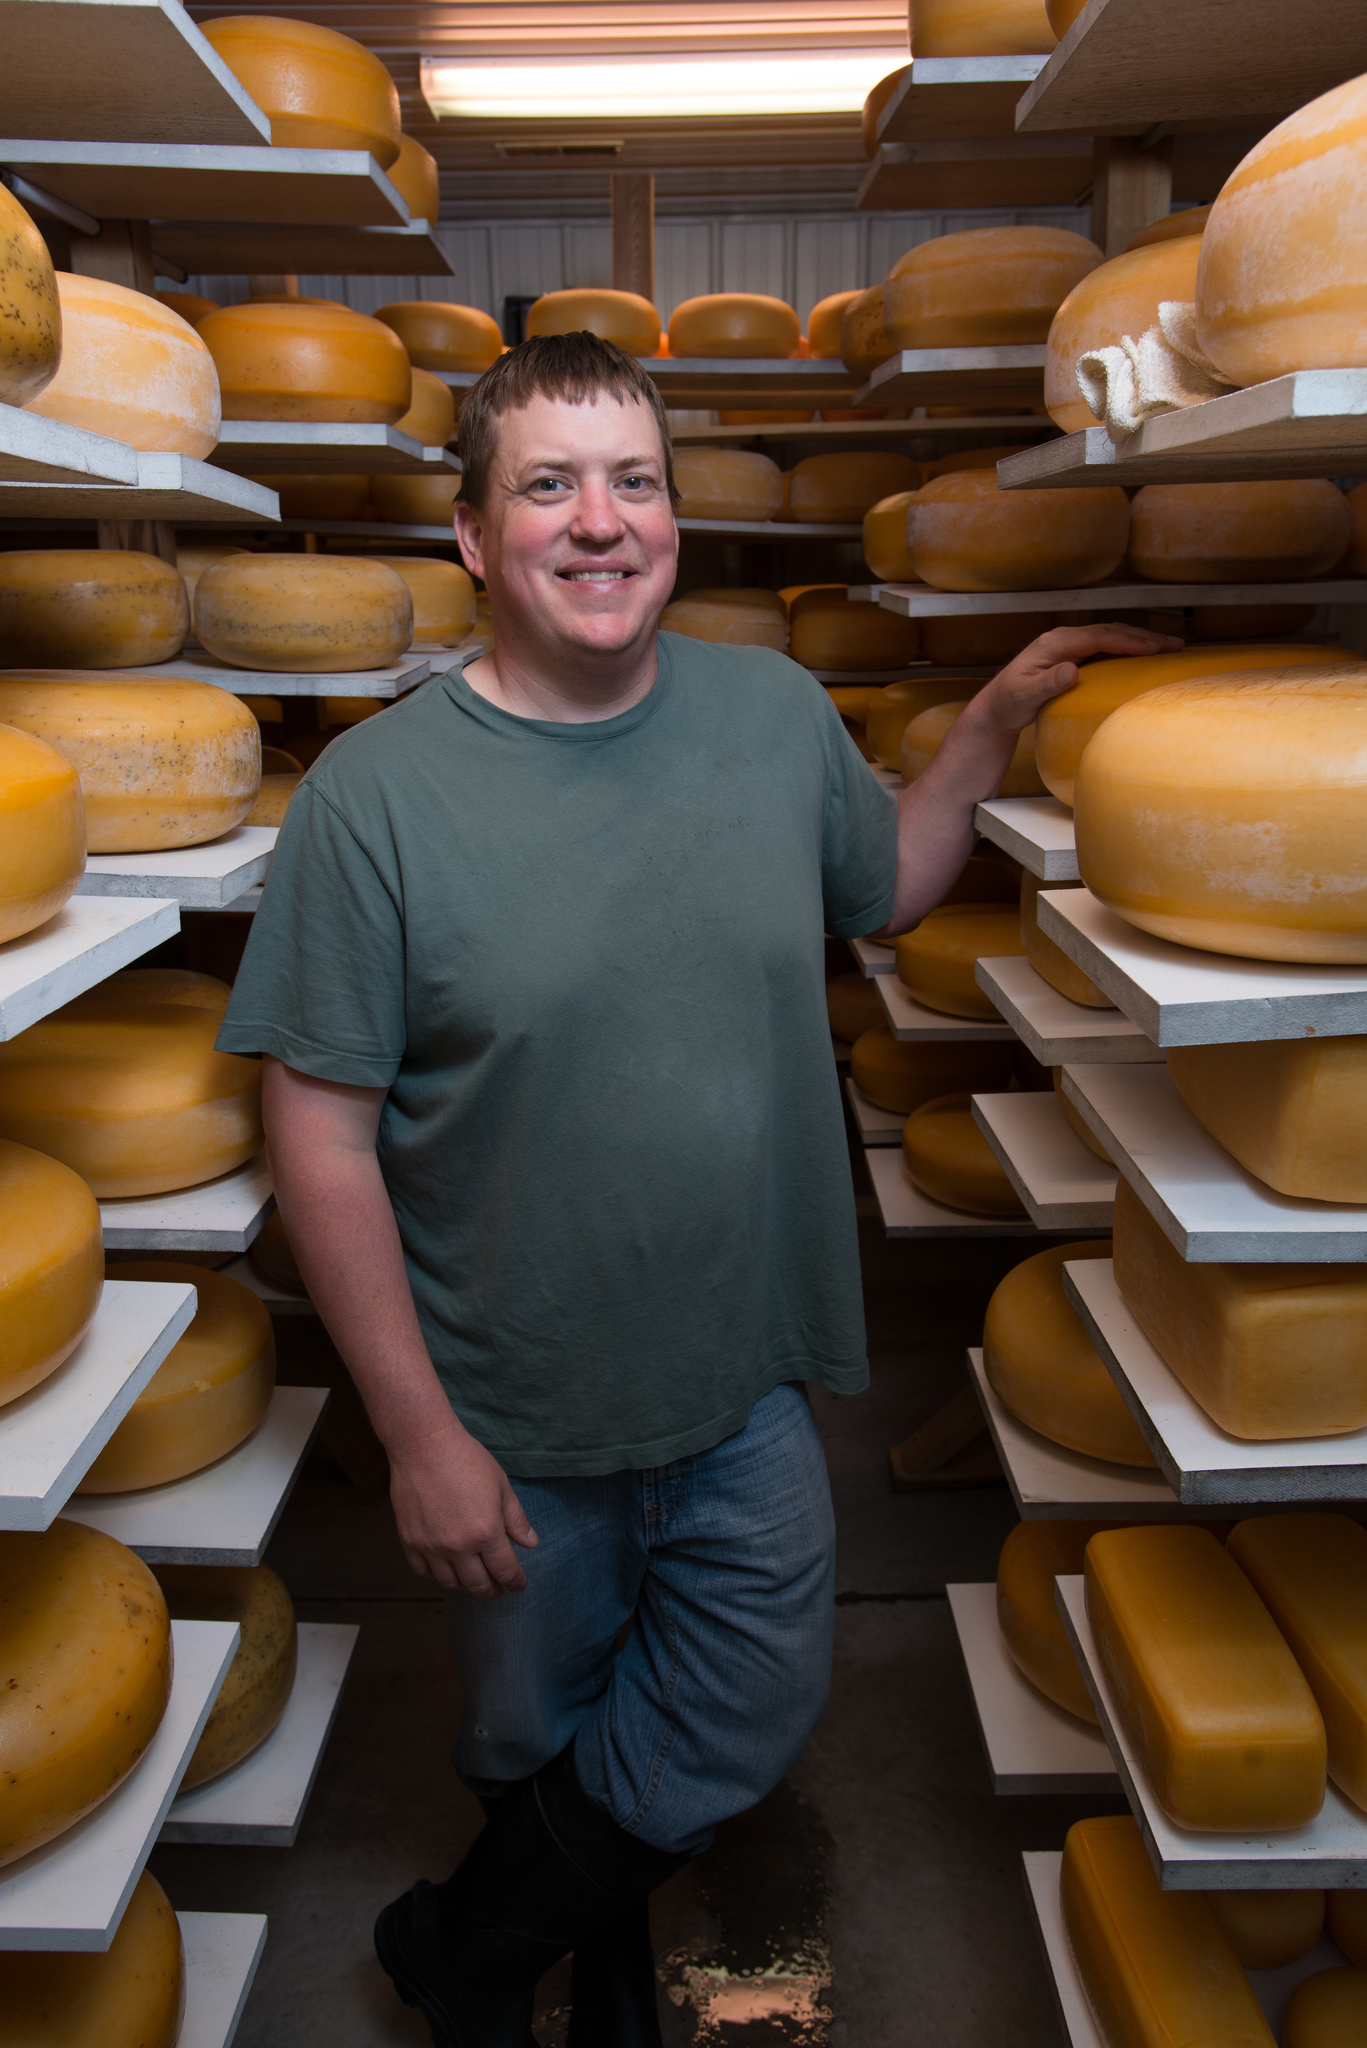 Frisian Farms Cheese House is famous for their Gouda cheese. Photo credit: Joseph L. Murphy/Iowa Soybean Association